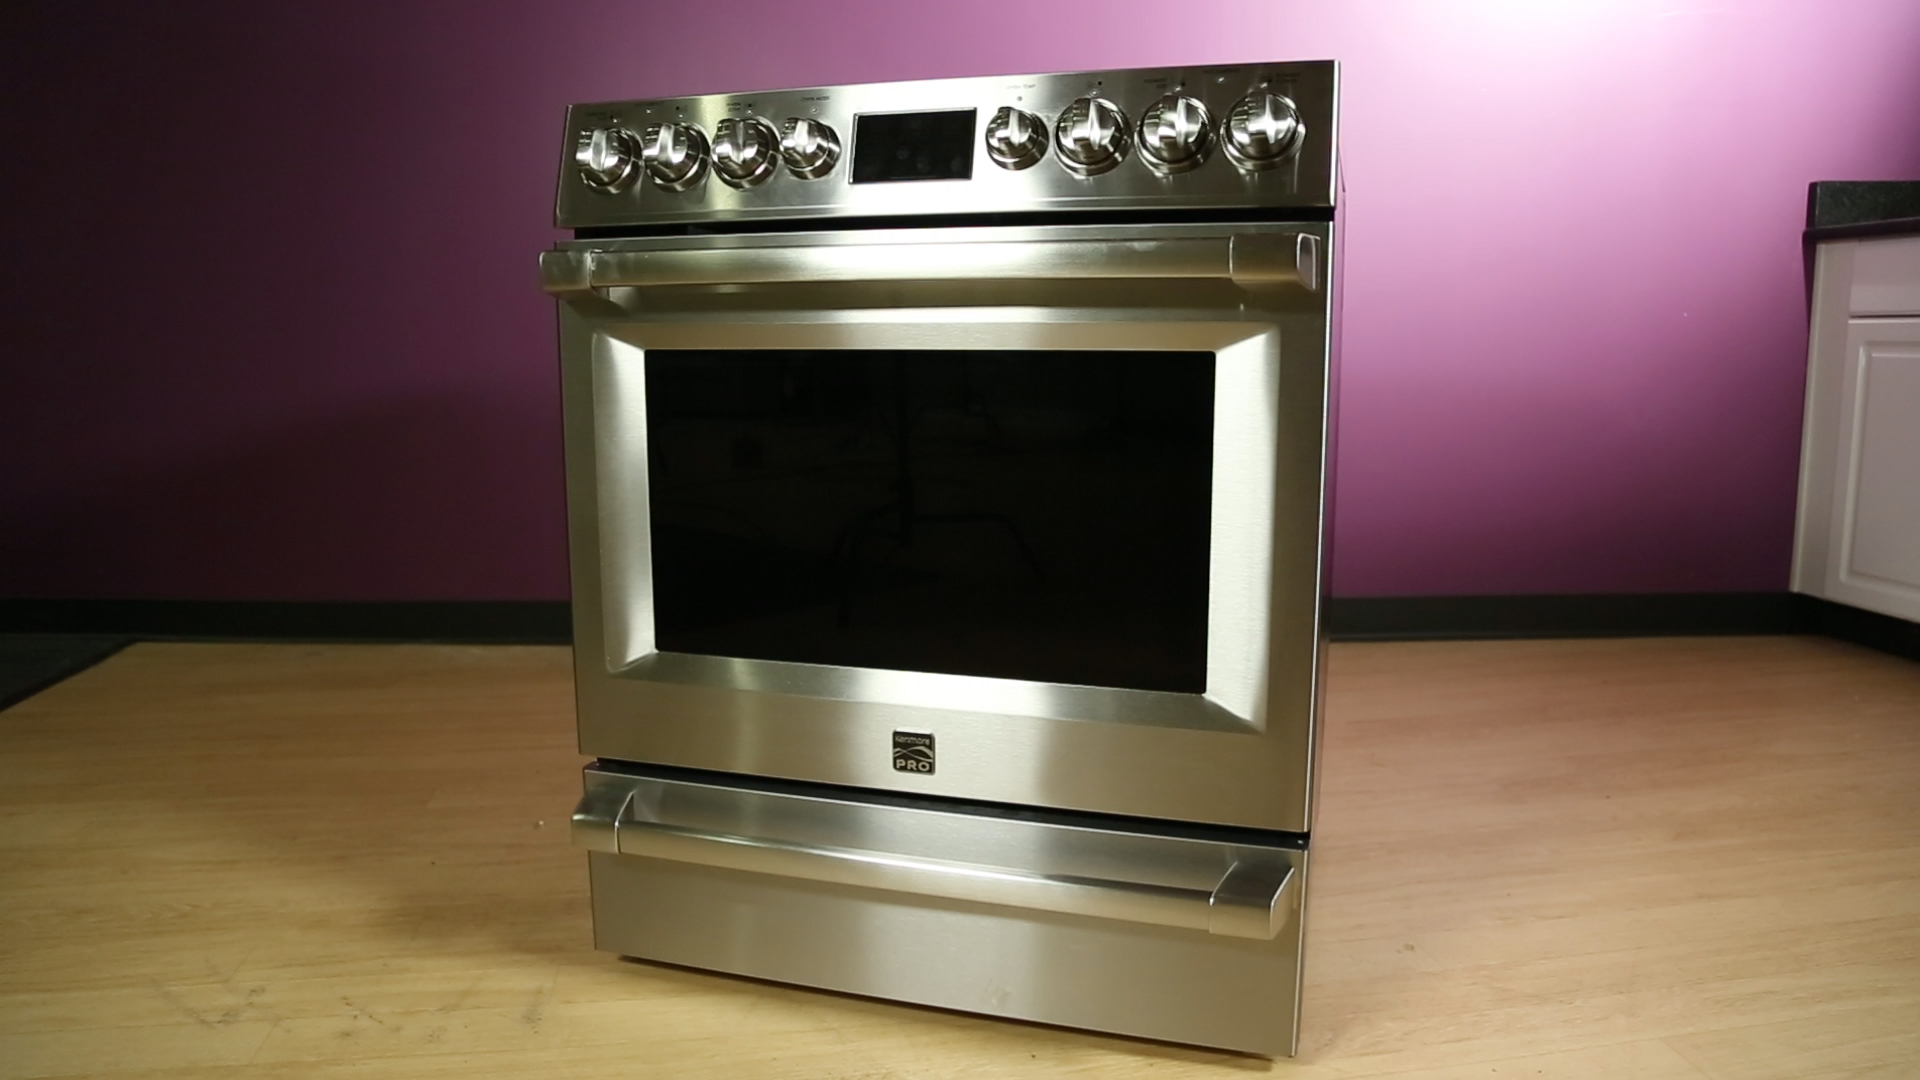 Video: Kenmore has done better than this Pro oven